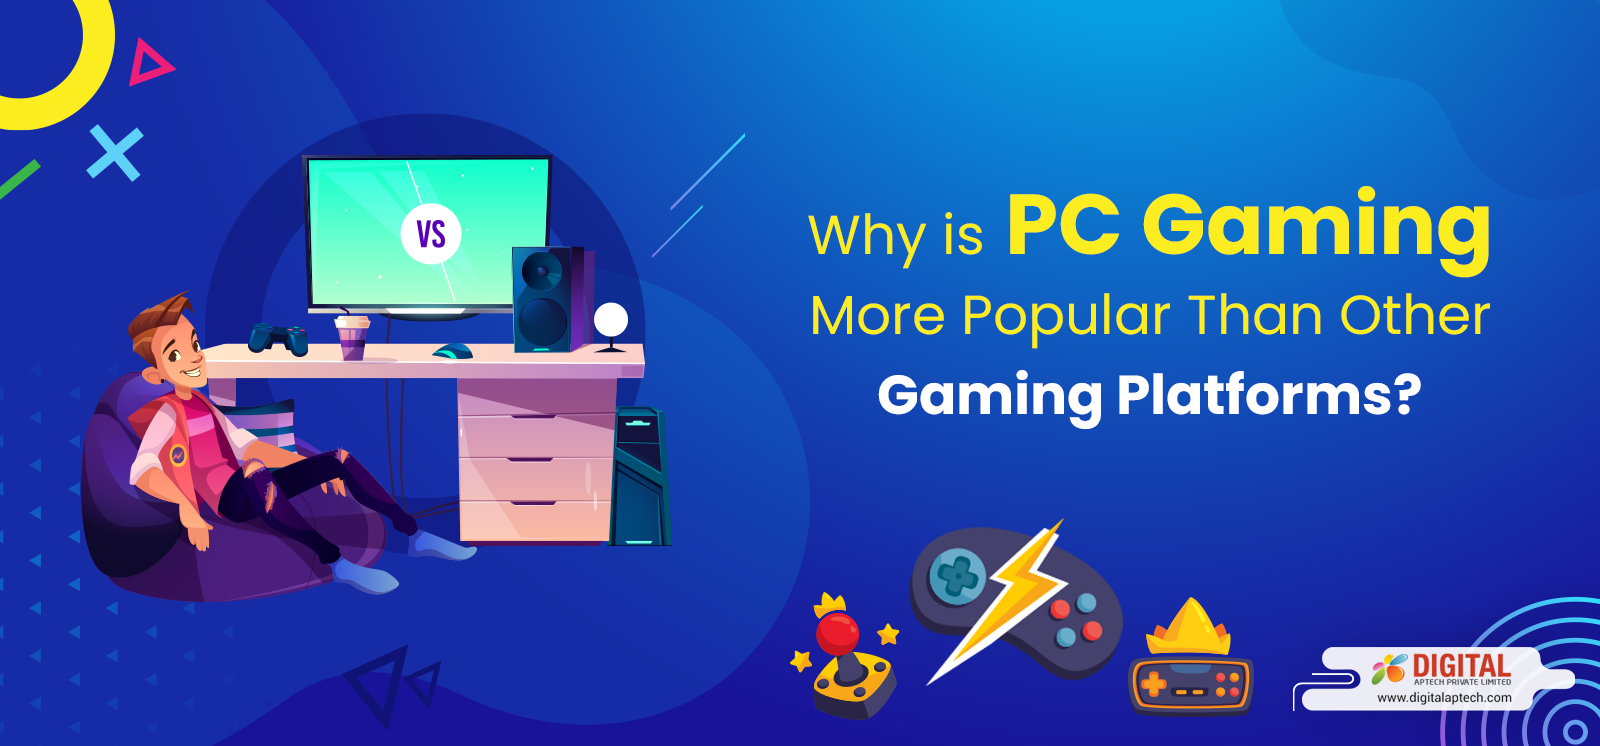 Why is PC Gaming More Popular Than Other Gaming Platforms?